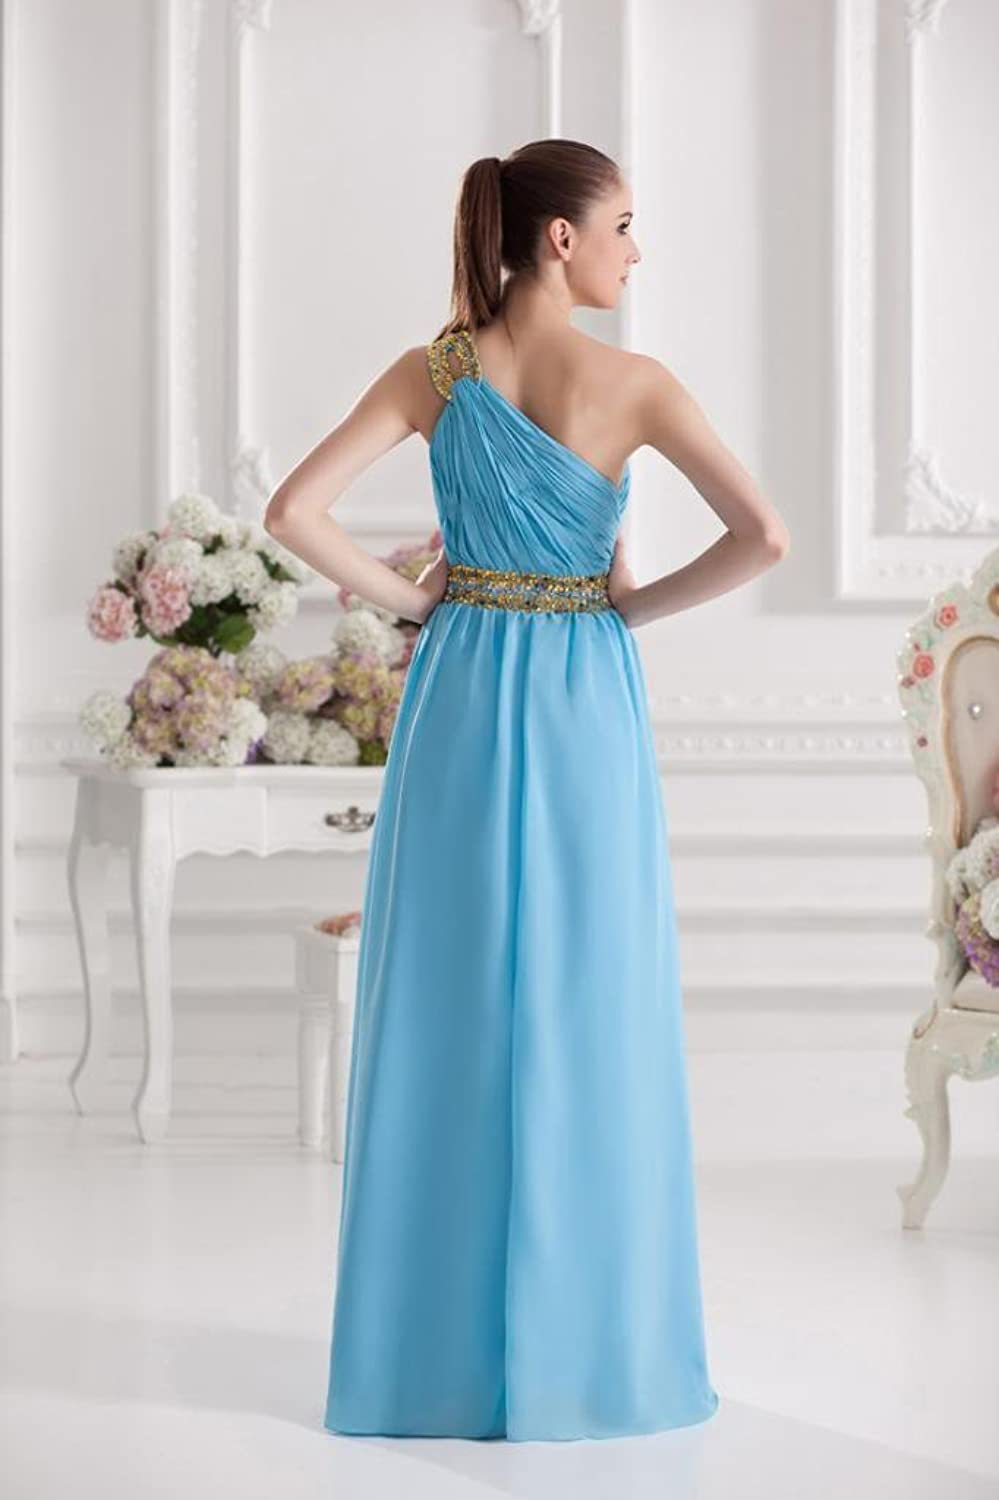 GEORGE BRIDE Blue Gorgeous One Shoulder Beading Long Evening Dress